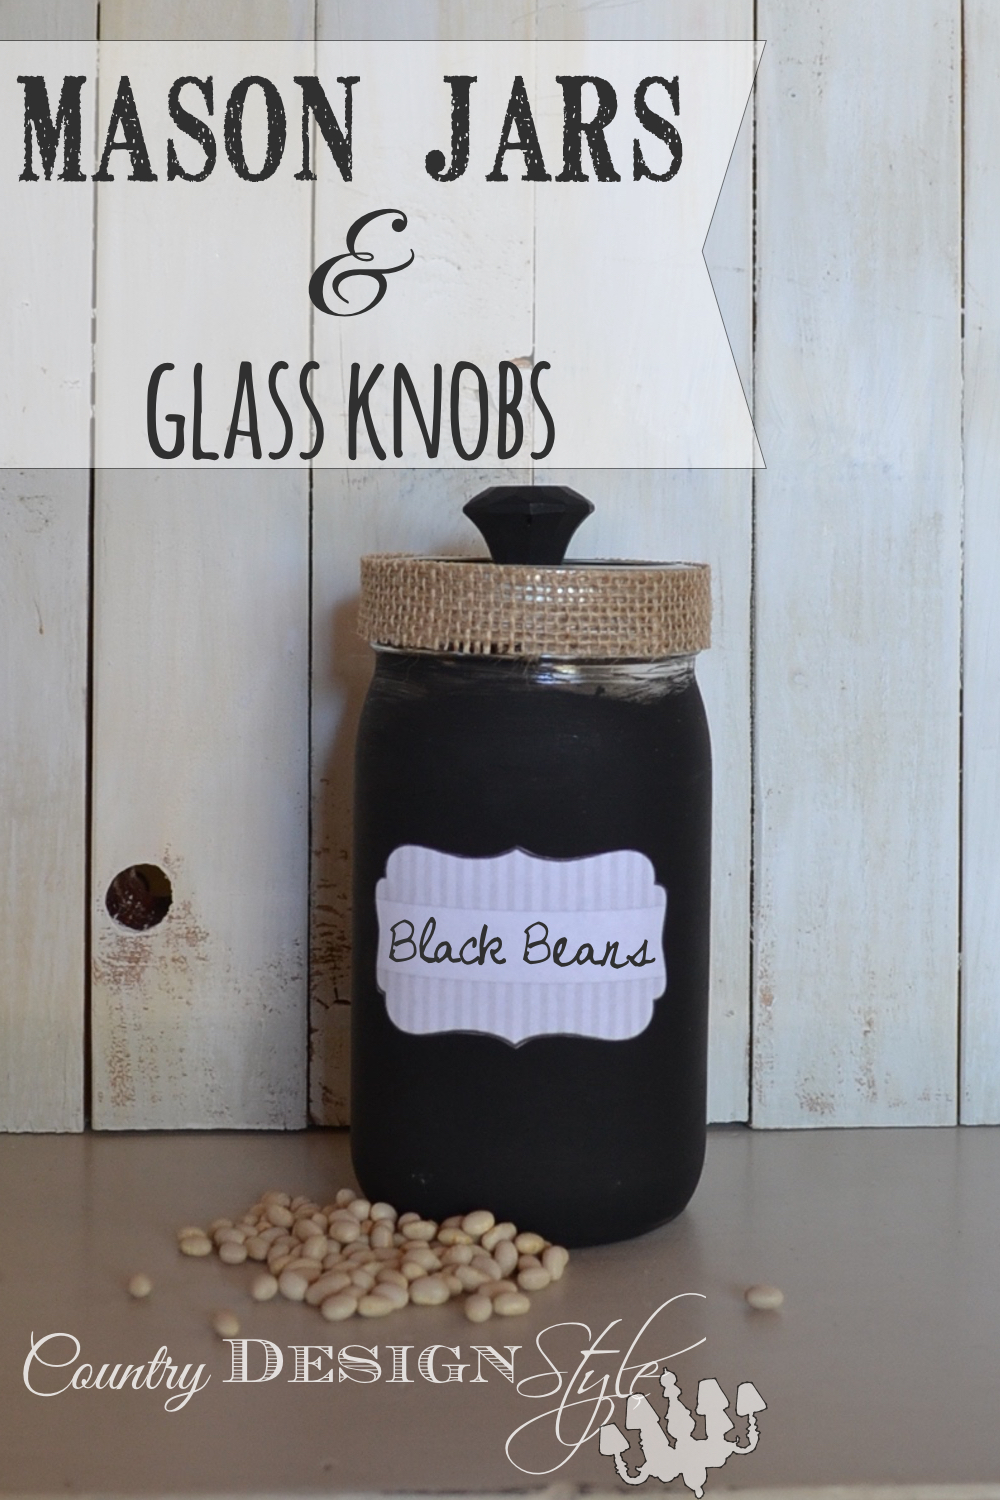 mason-jars-and-glass-knobs-country-design-style-pn3